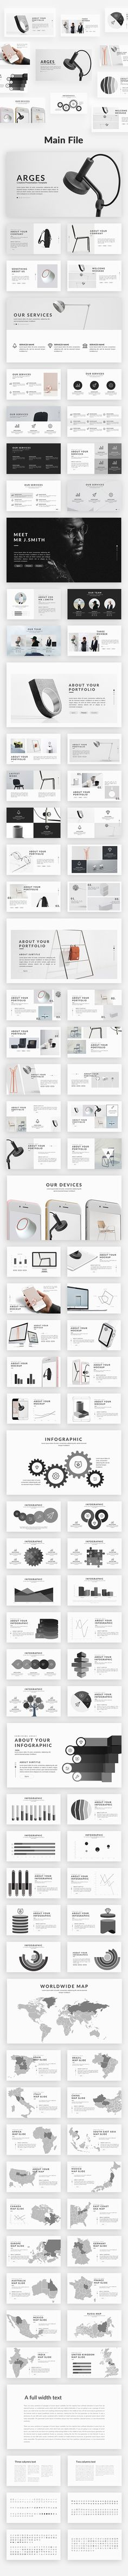 Arges Minimal Keynote Template — Keynote KEY #clean design #marketing pitch deck • Available here → https://graphicriver.net/item/arges-minimal-keynote-template/19485542?ref=pxcr